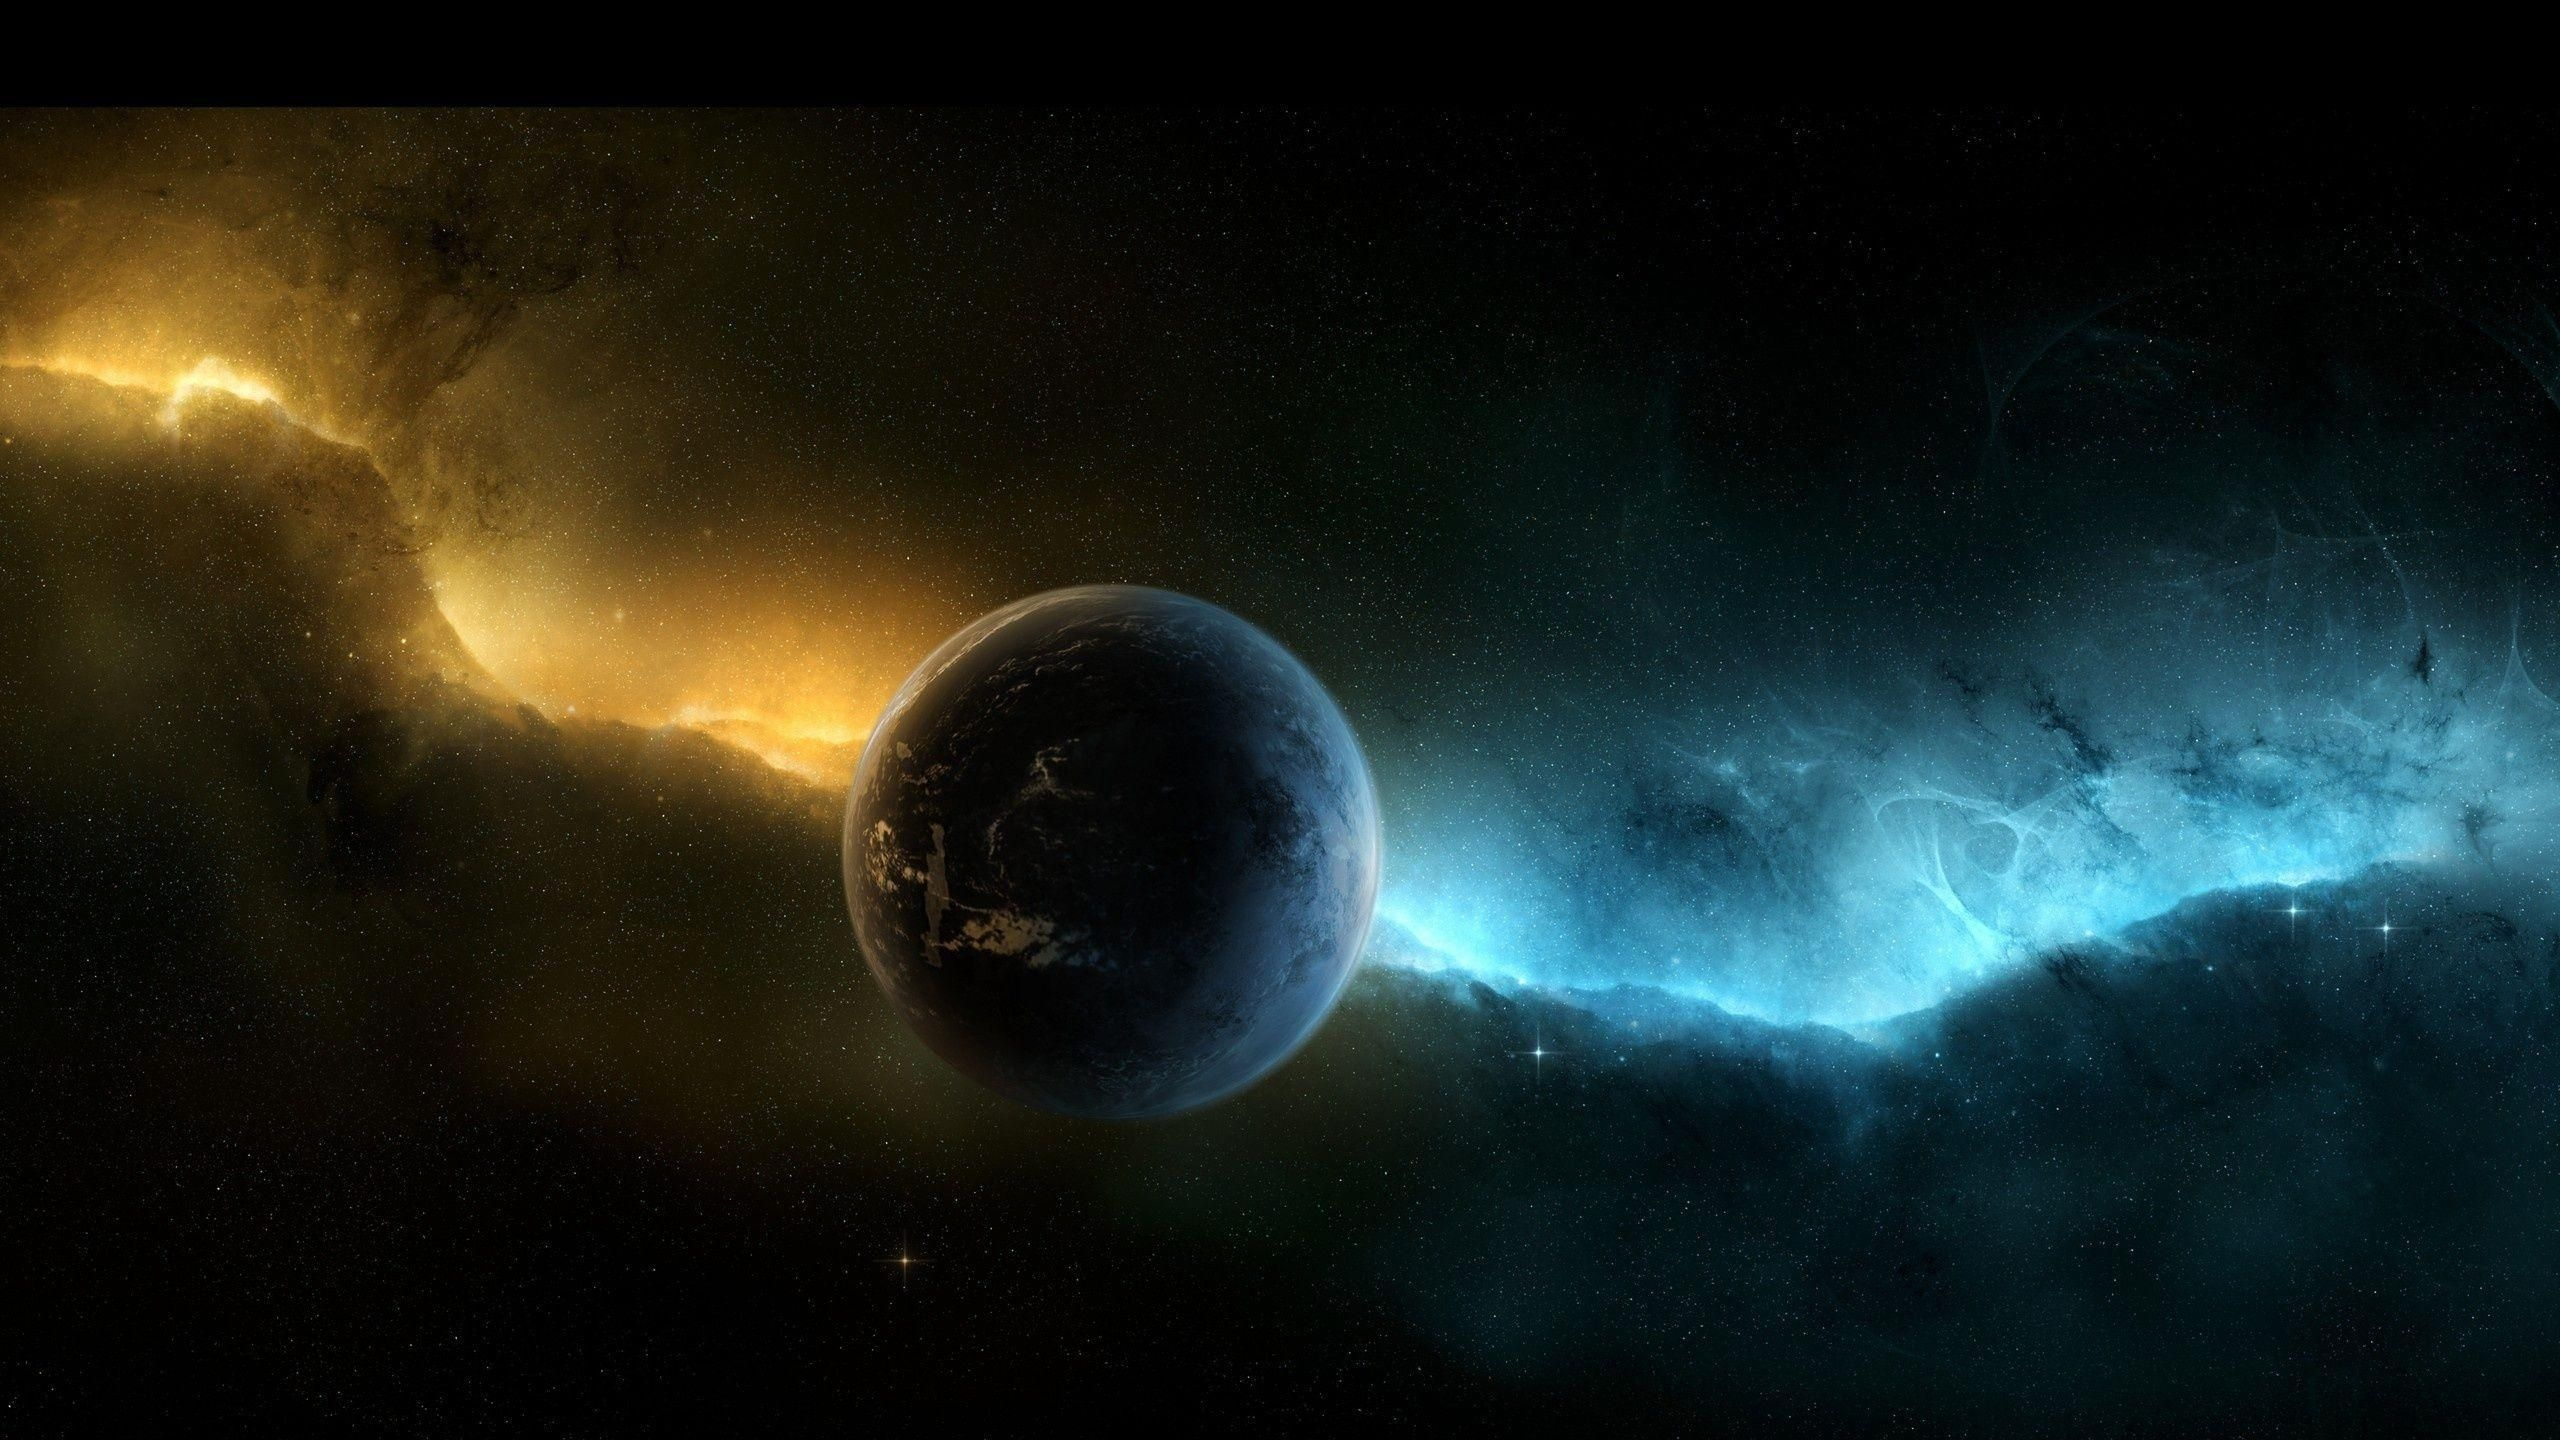 Space 2560x1440 Wallpapers Top Free Space 2560x1440 Backgrounds Wallpaperaccess